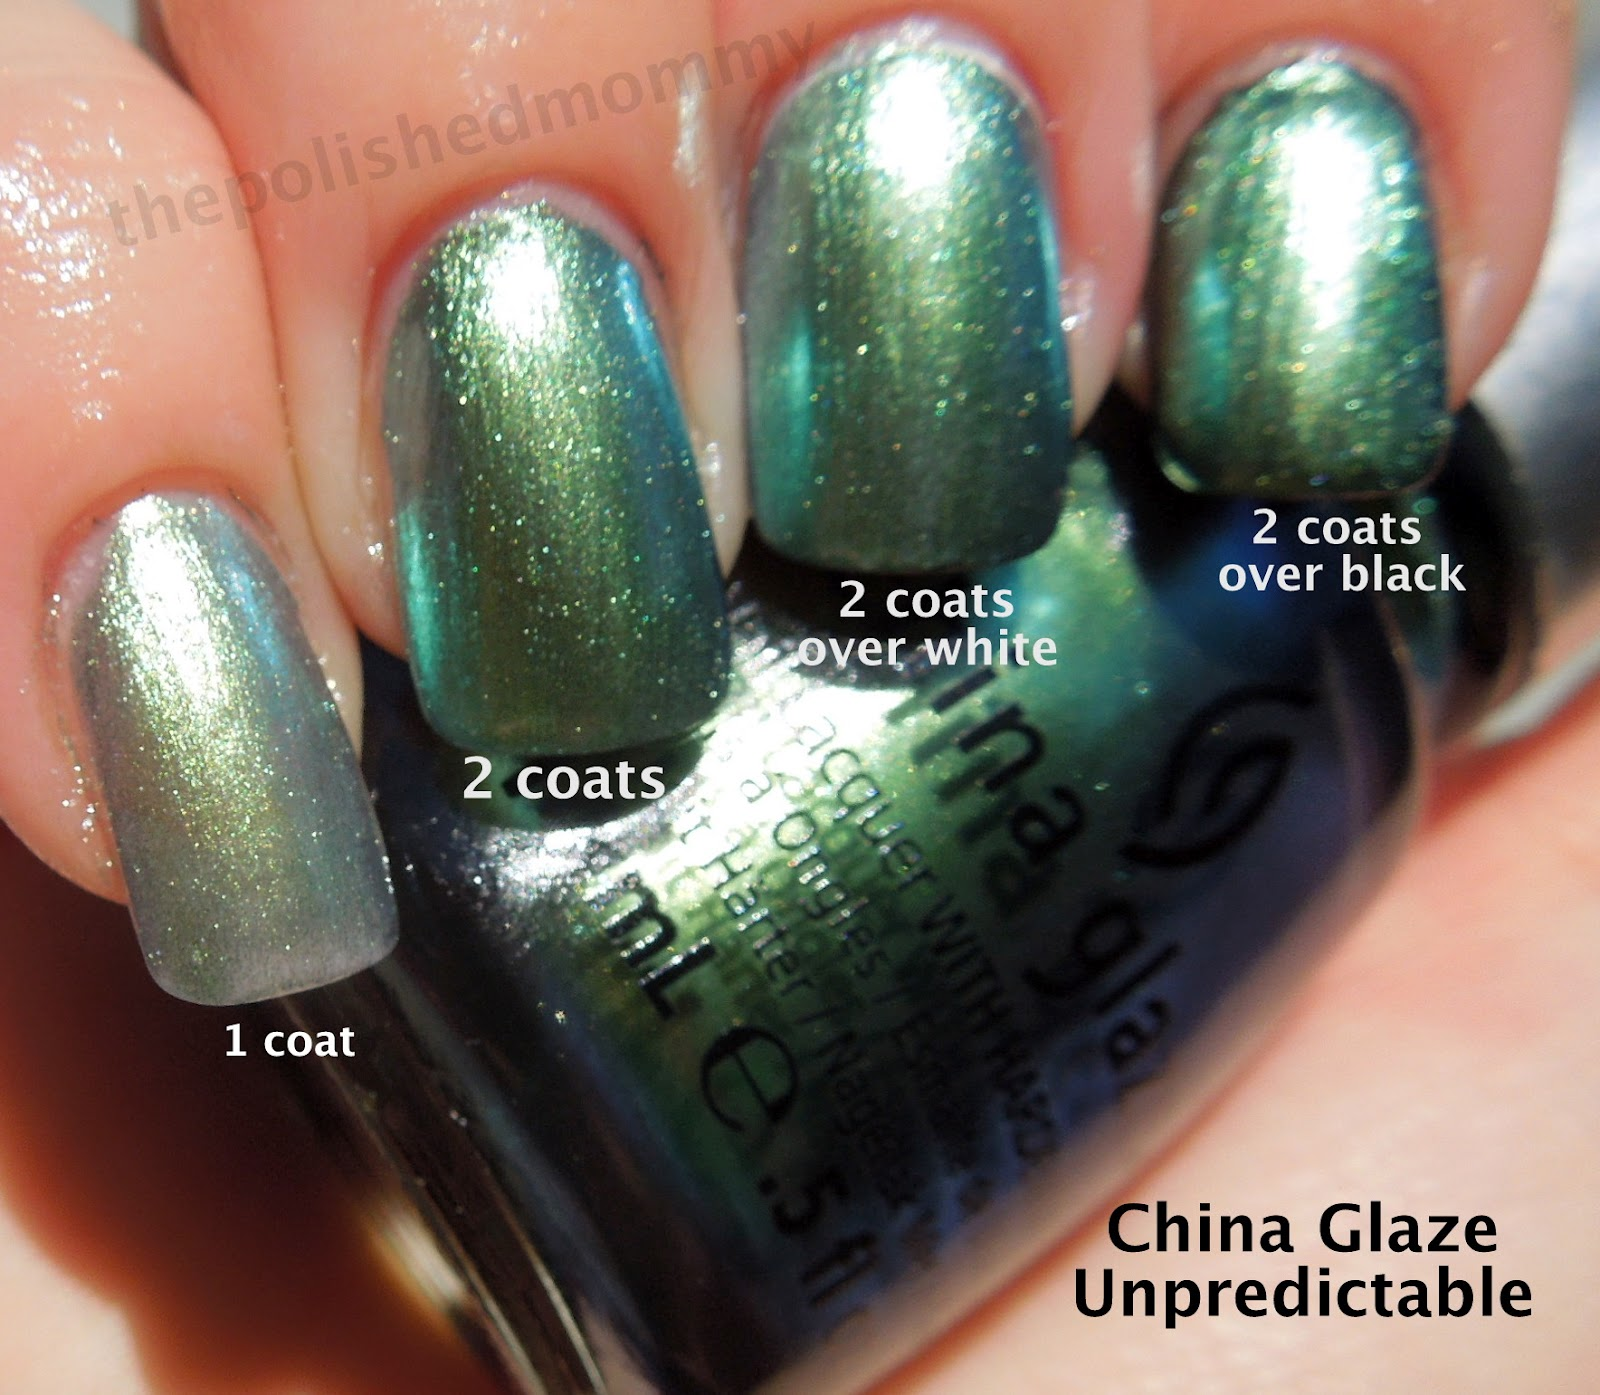 China Glaze's New Bohemian Collection Is Inspired By Nicole Richie recommend